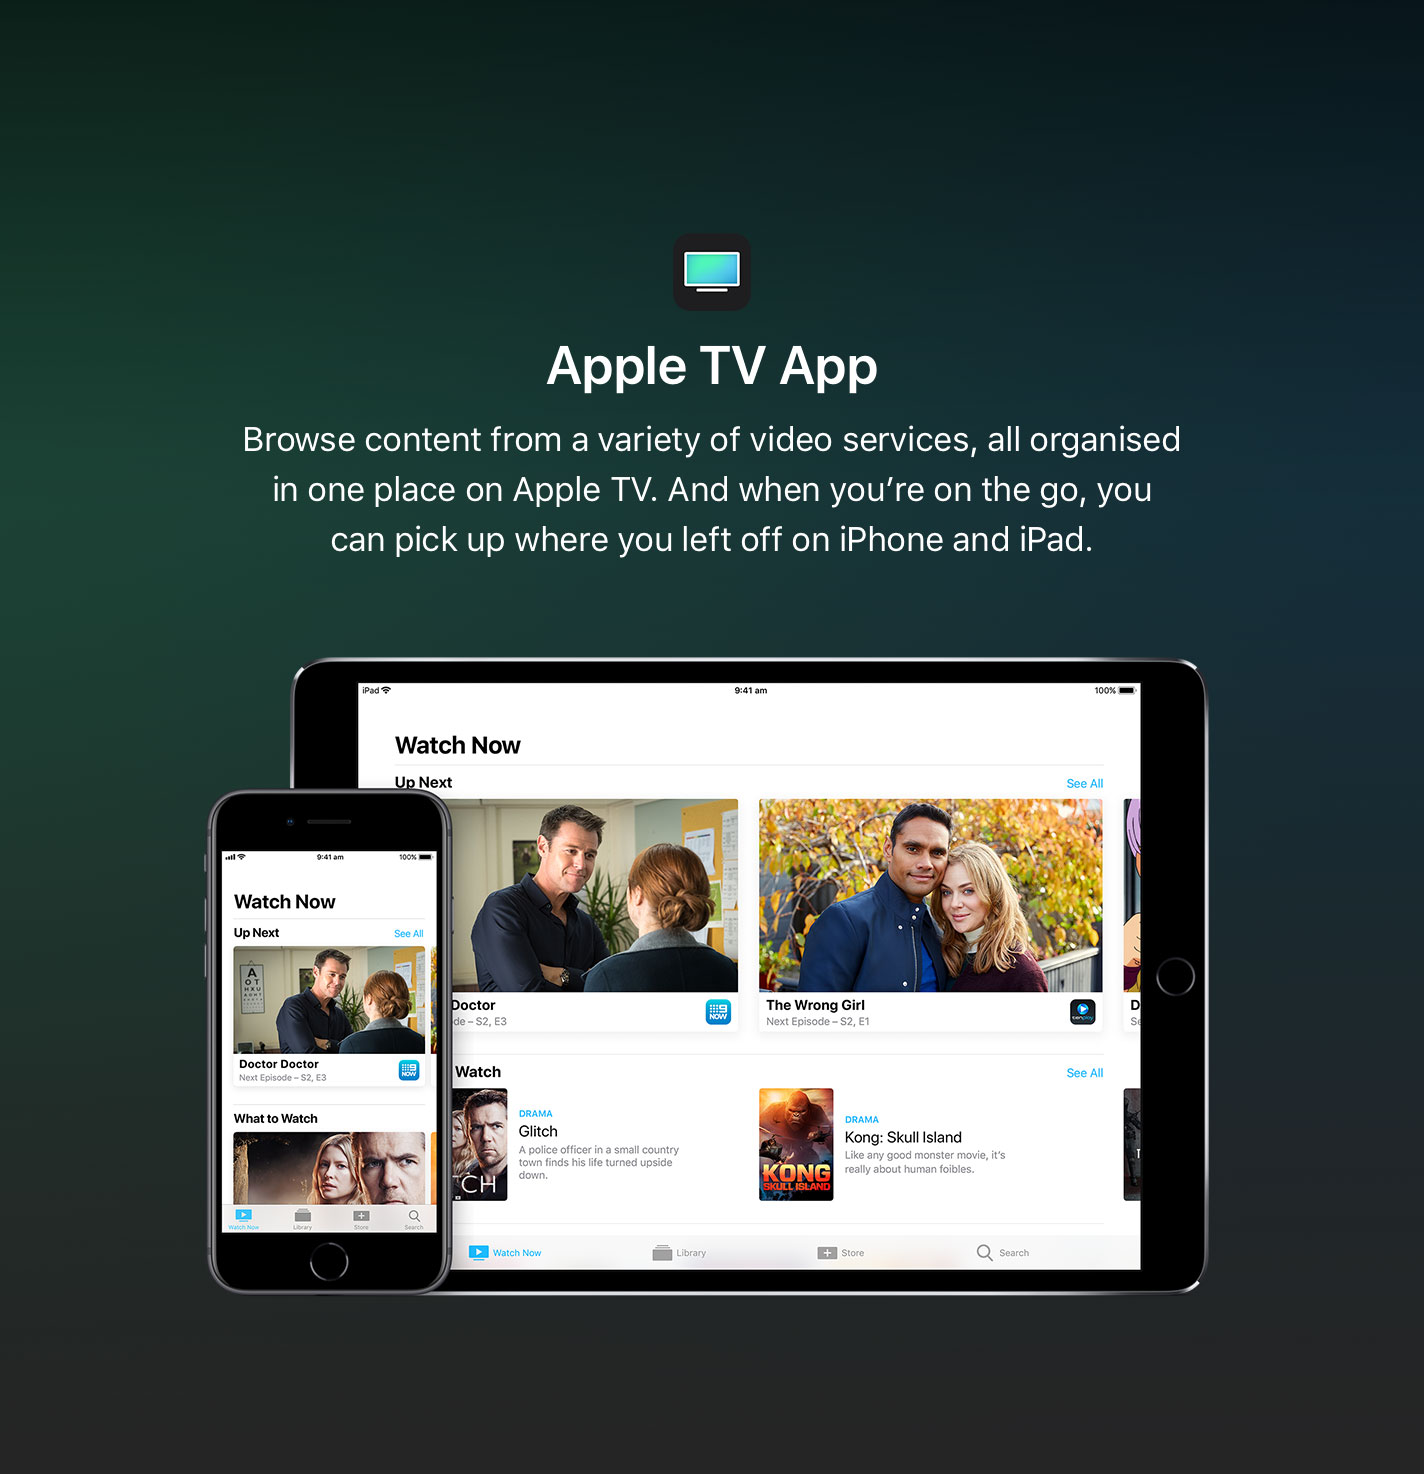 Browse content from a variety of video services, all organised in one place on Apple TV. And when you're on the go, you can pick up where you left off on iPhone and iPad.